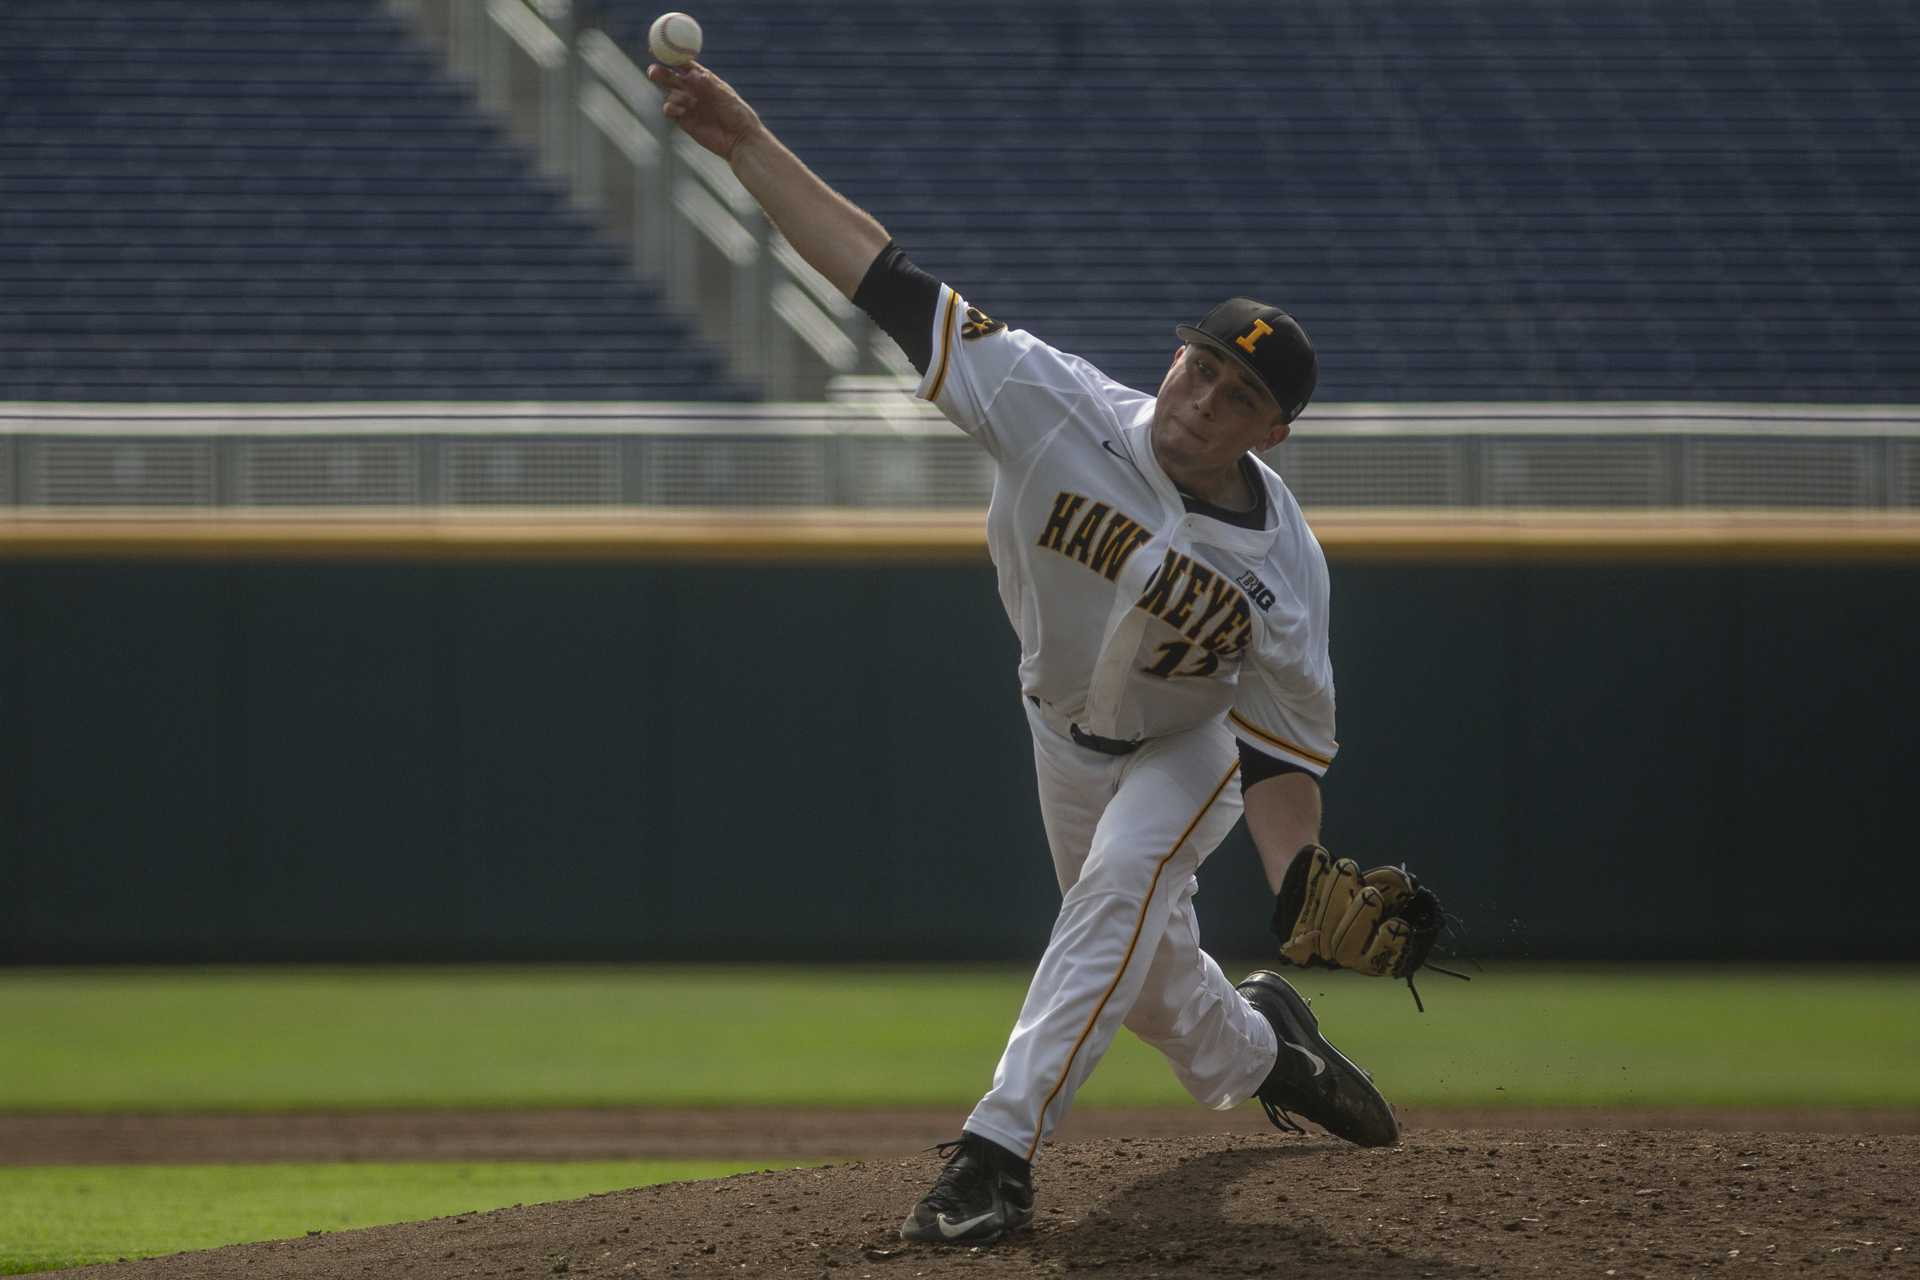 Iowa's Cole McDonald delivers a pitch during Iowa's Big Ten tournament game against Ohio State on Thursday, May 24, 2018. The Buckeyes defeated the Hawkeyes 2-0. (Nick Rohlman/The Daily Iowan)